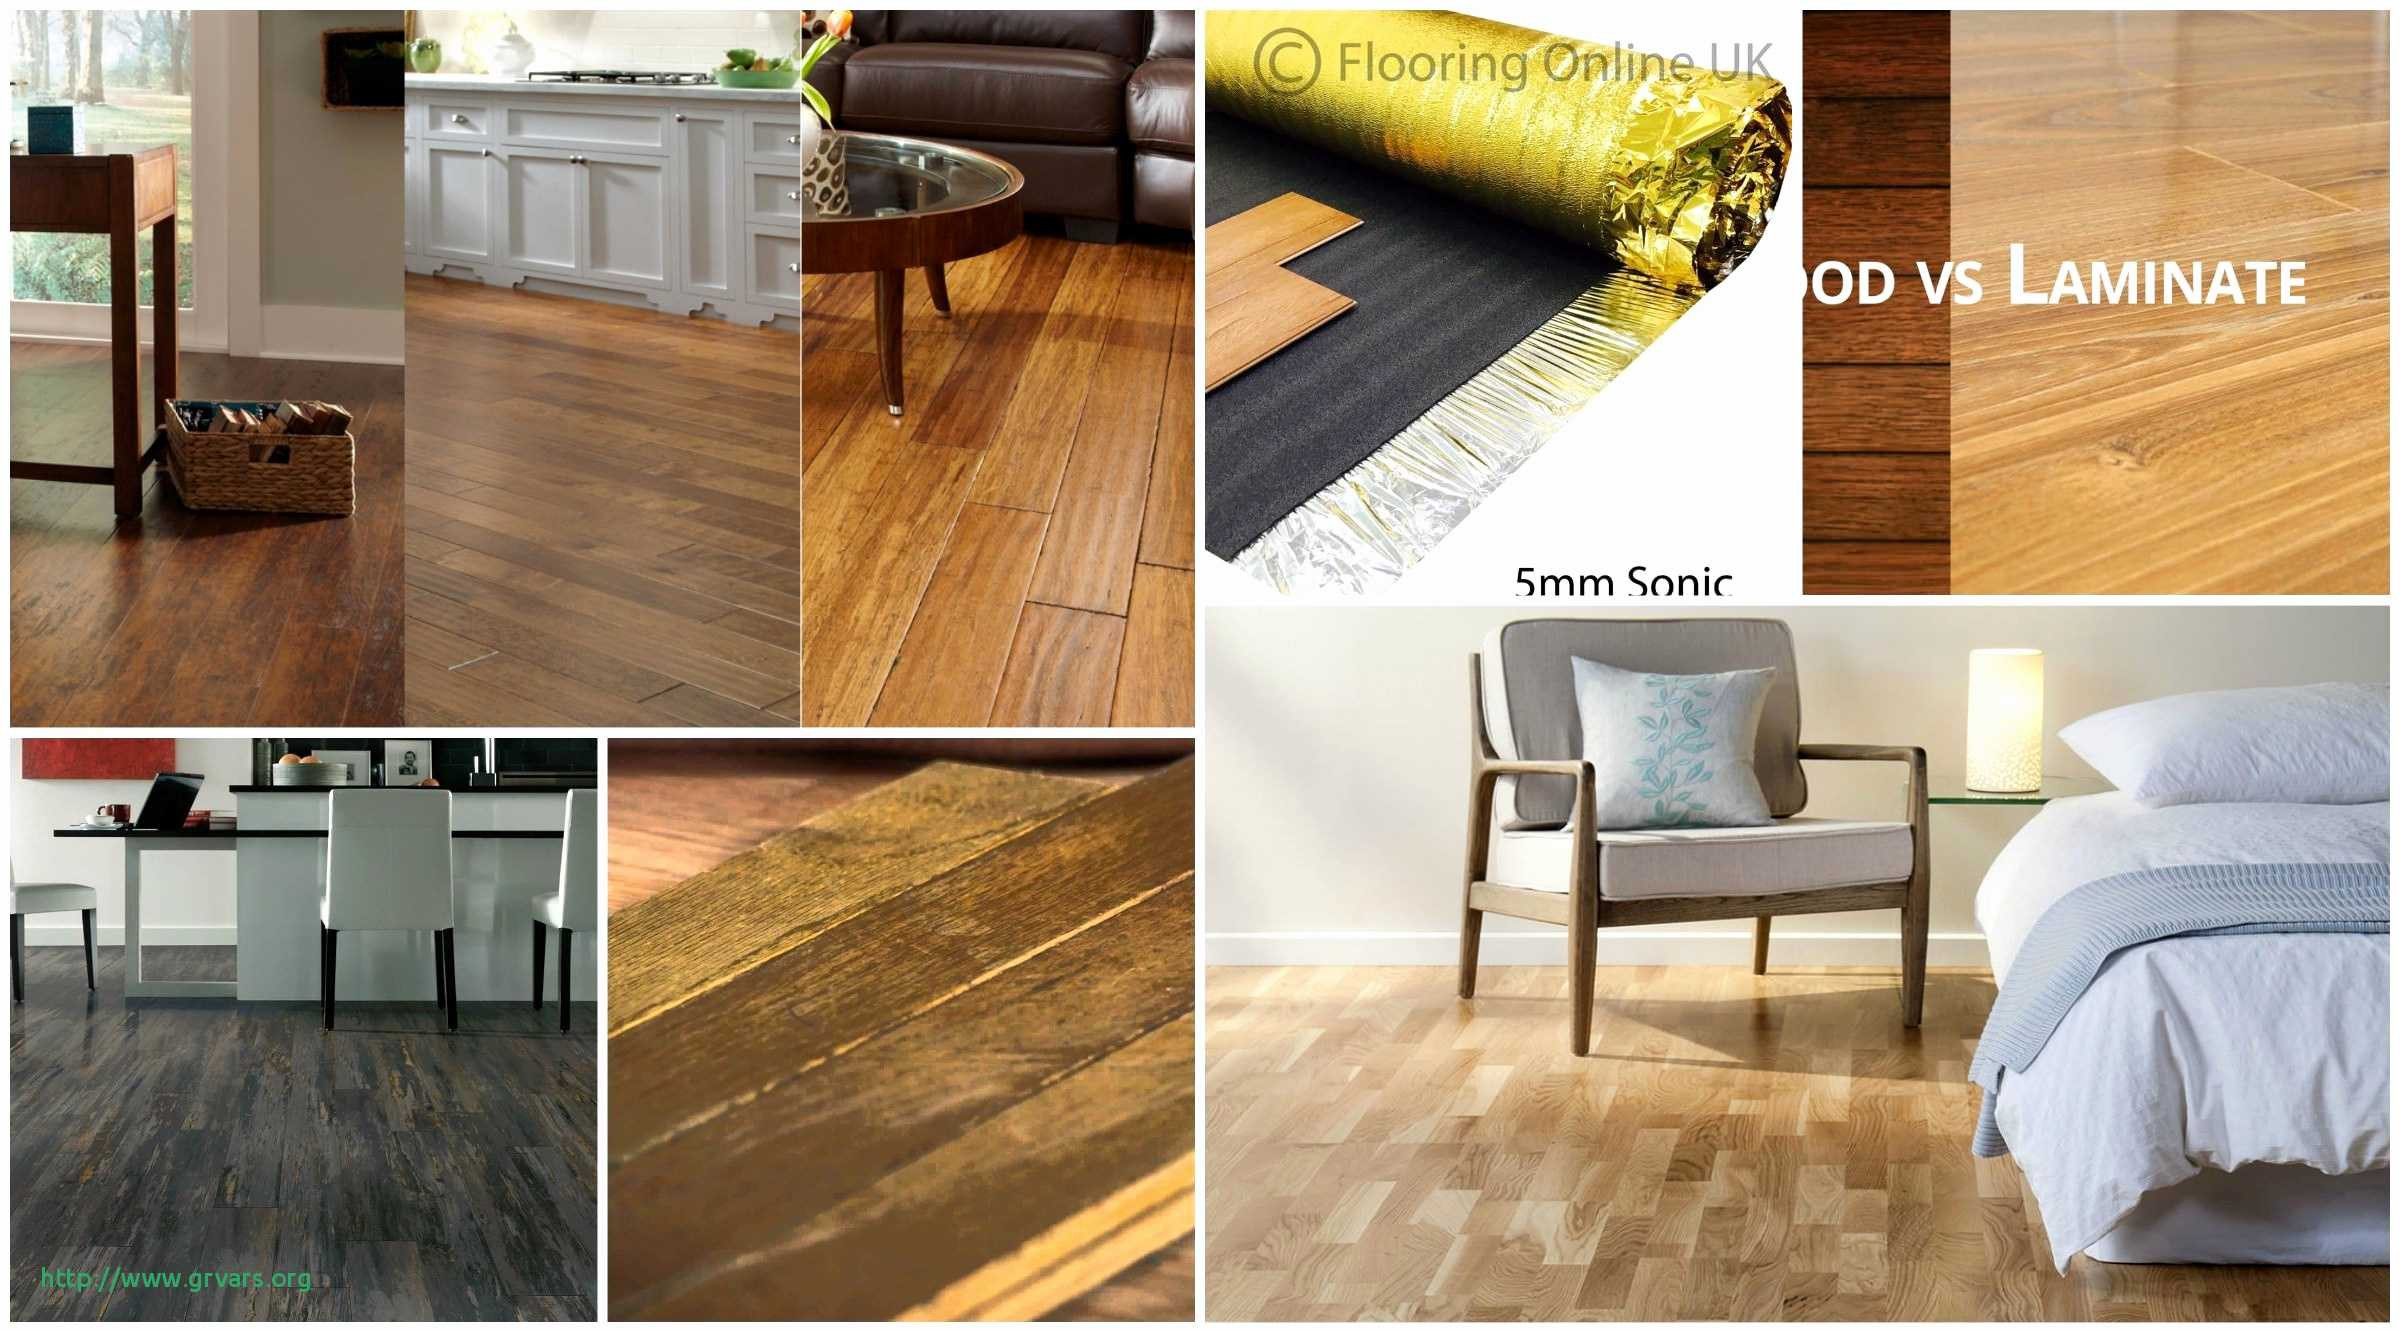 Lowes Hardwood Floor Scratch Repair Of 17 Frais How to Build A Shower Pan On A Wood Floor Ideas Blog Pertaining to How to Build A Shower Pan On A Wood Floor Nouveau Tile Ready Shower Pan Lowes